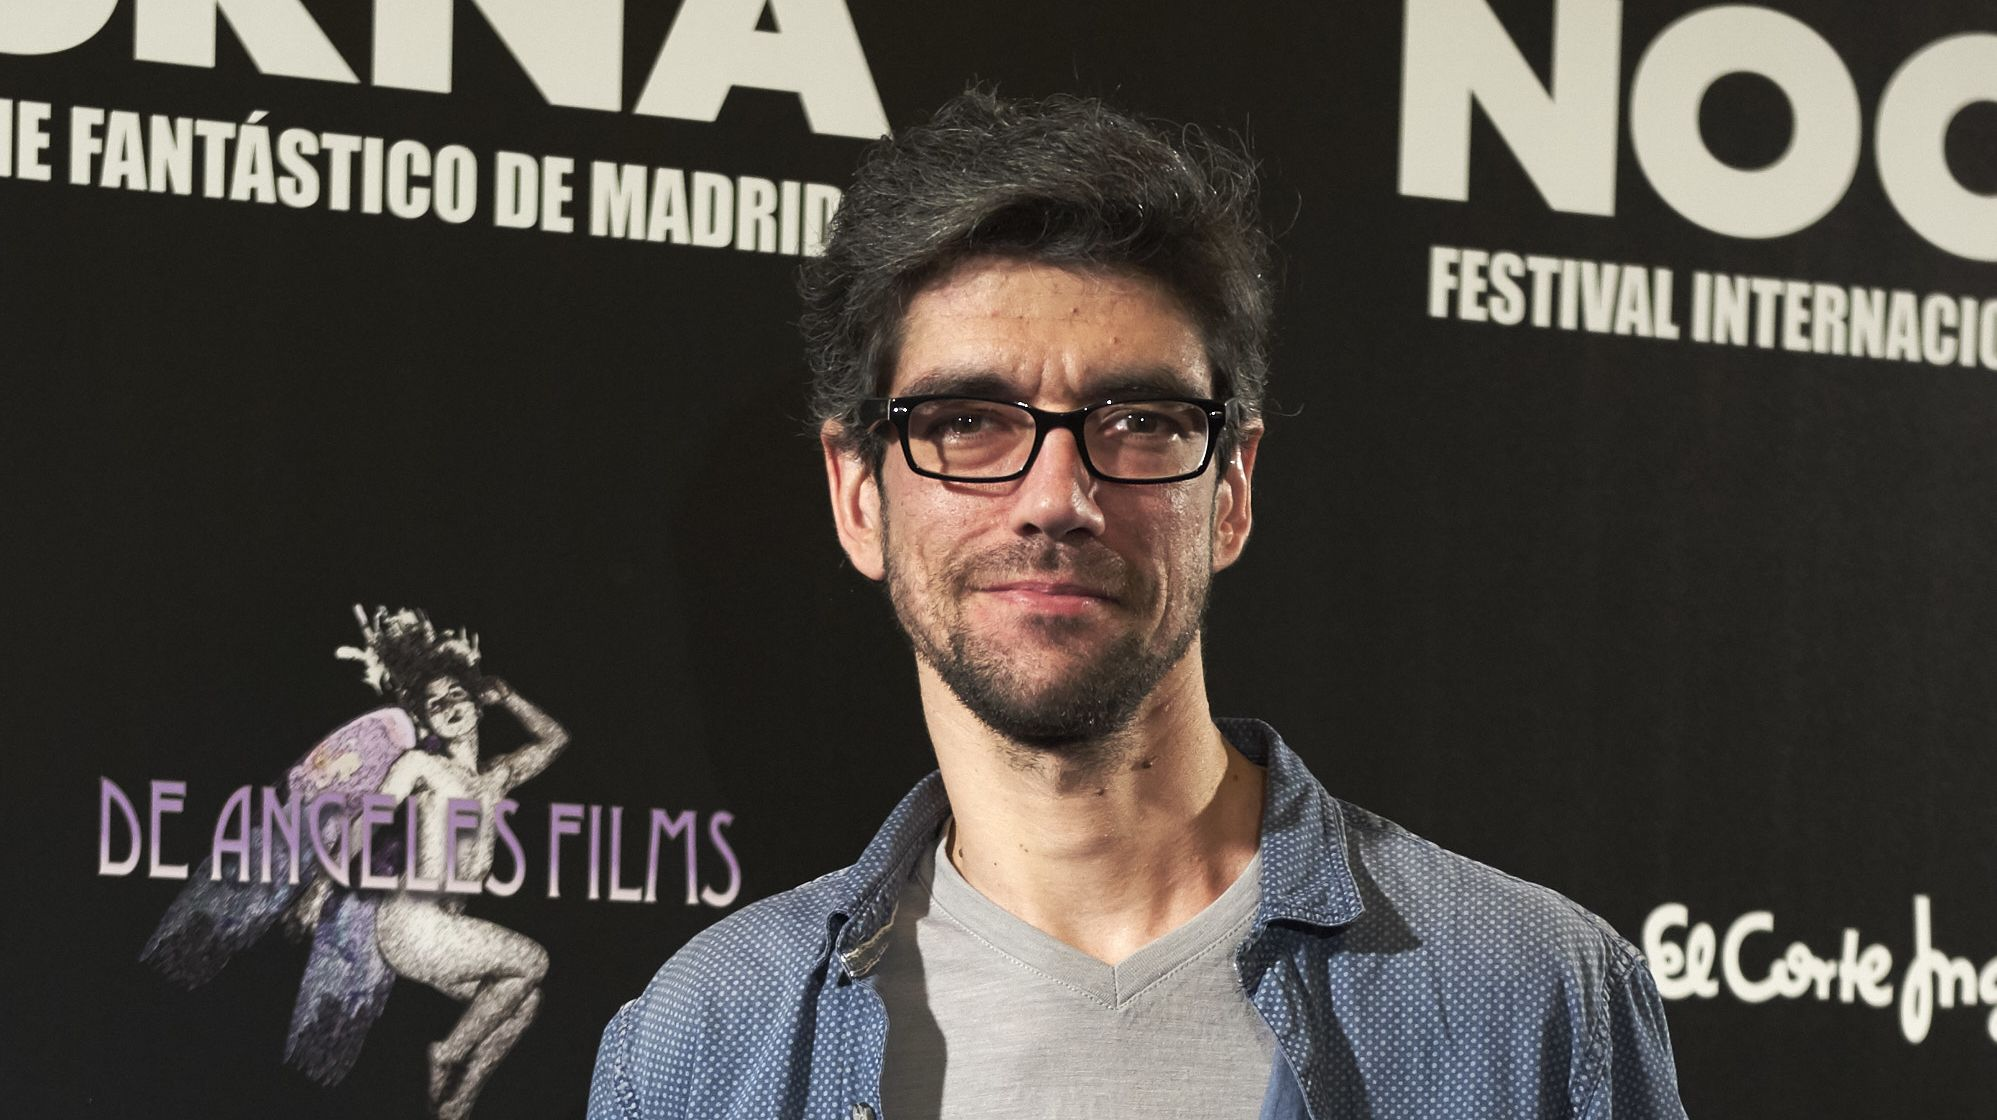 Meet Javier Botet: The Actor Behind Some Of Your Favorite